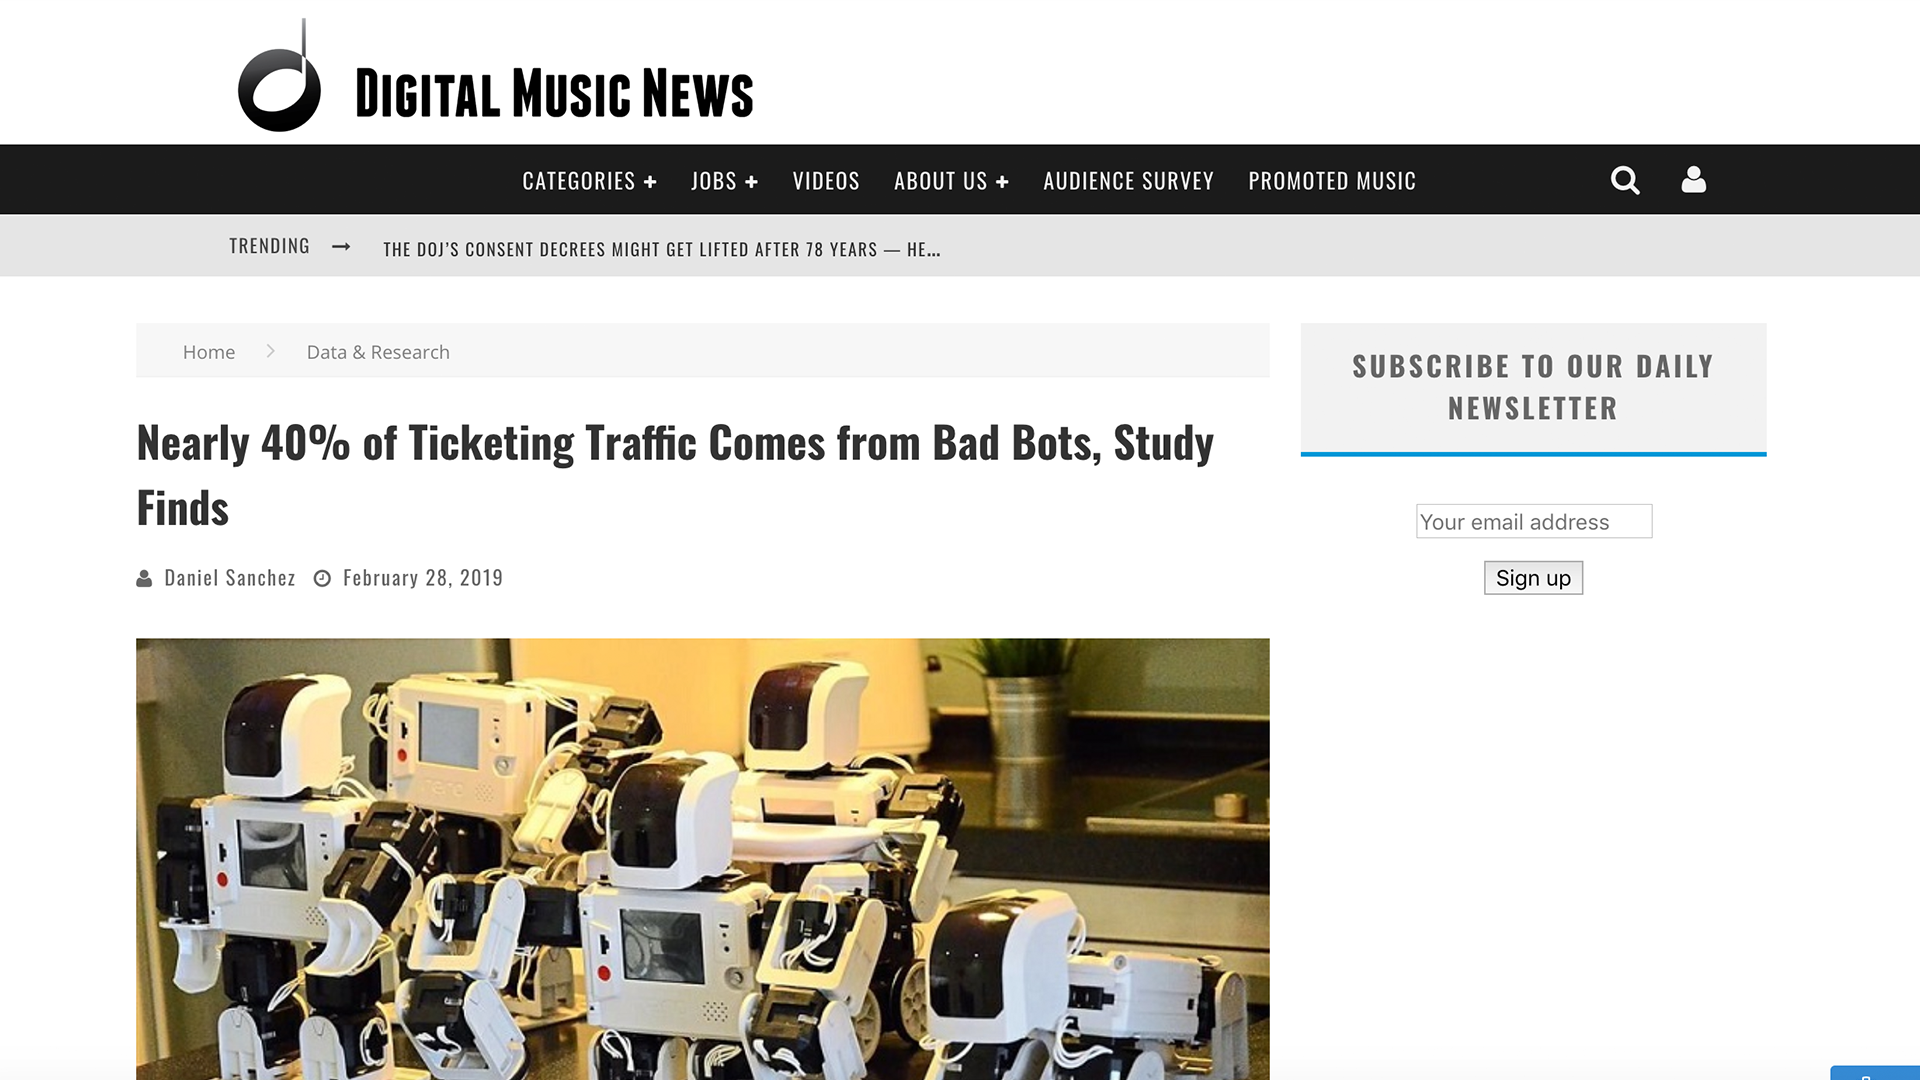 Fairness Rocks News Nearly 40% of Ticketing Traffic Comes from Bad Bots, Study Finds